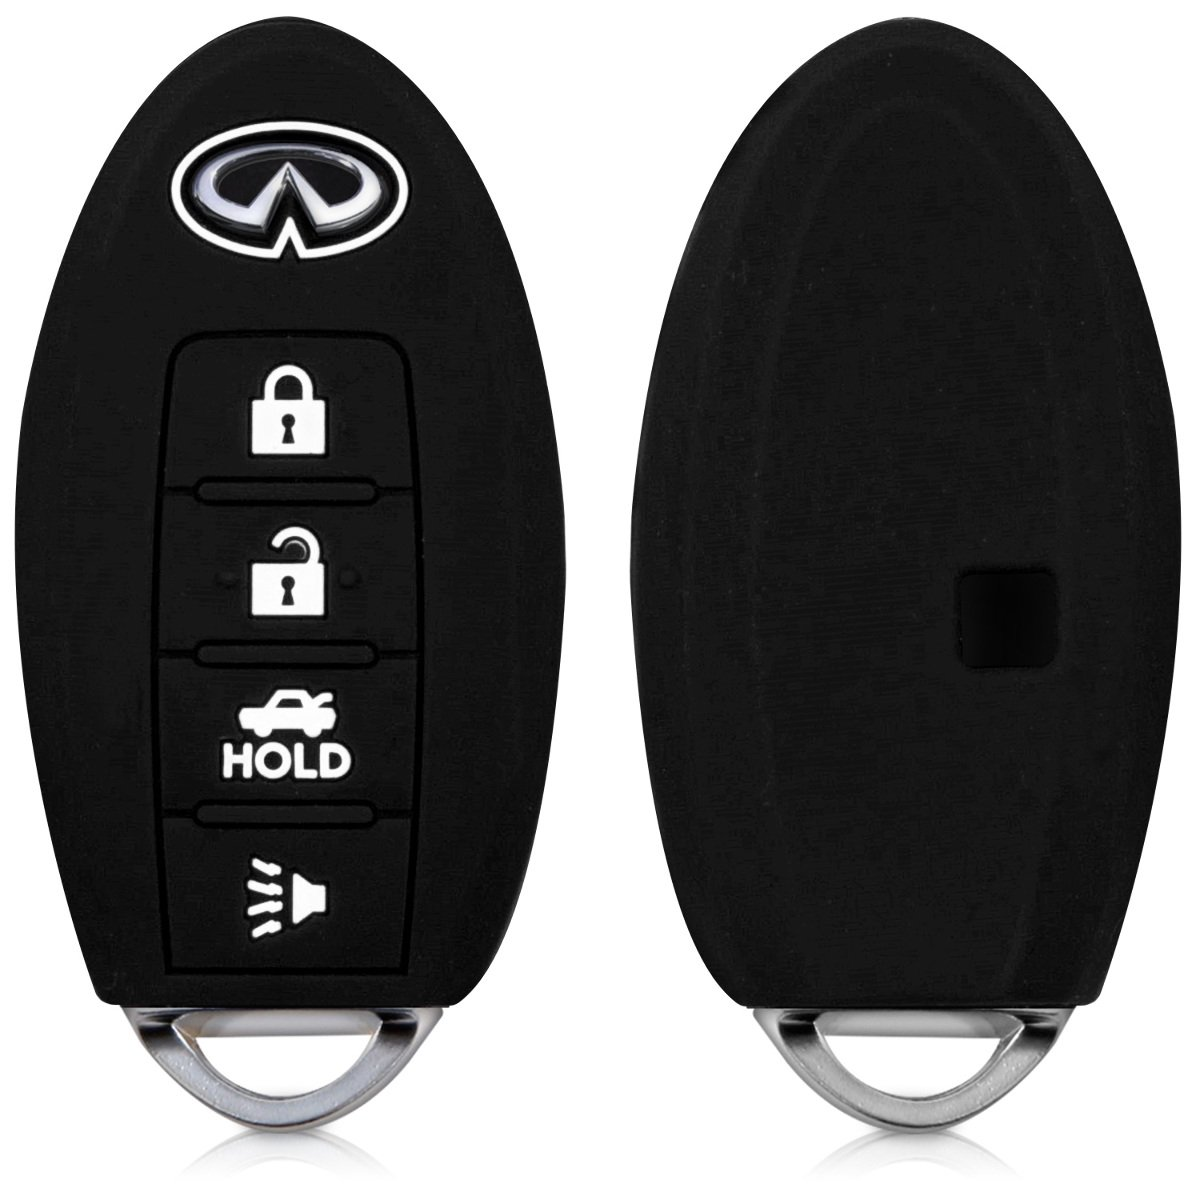 kwmobile Infiniti Car Key Cover - Silicone Protective Key Fob Cover for Infiniti 4 Button Remote Control Car Key - Black